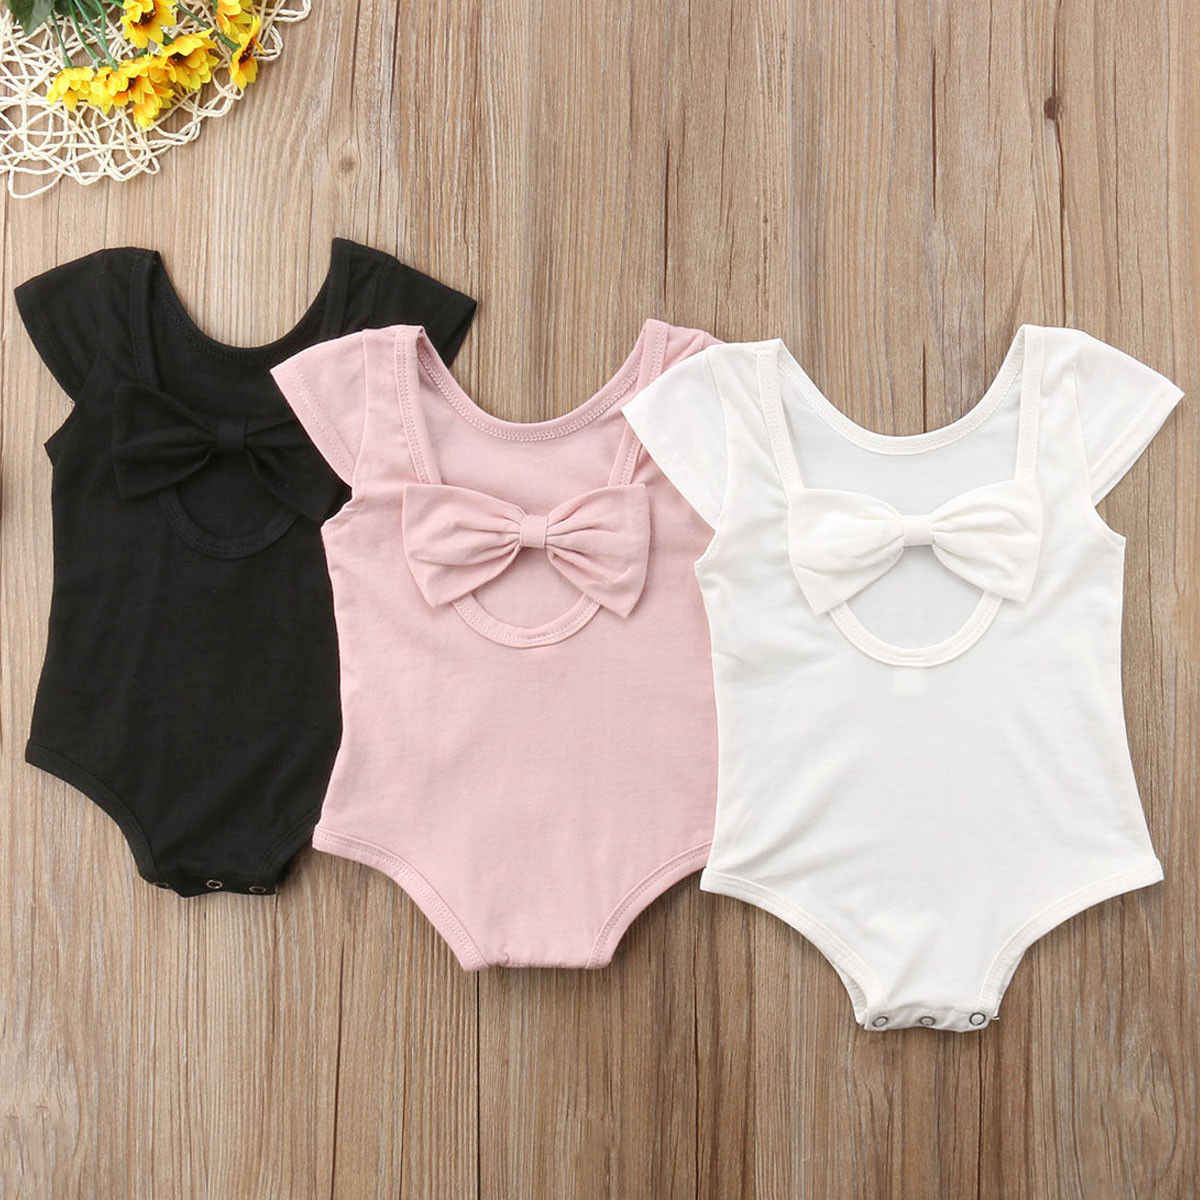 2019 Baby Meisjes Baby Strik Jumpsuit Playsuit Sunsuit Outfits